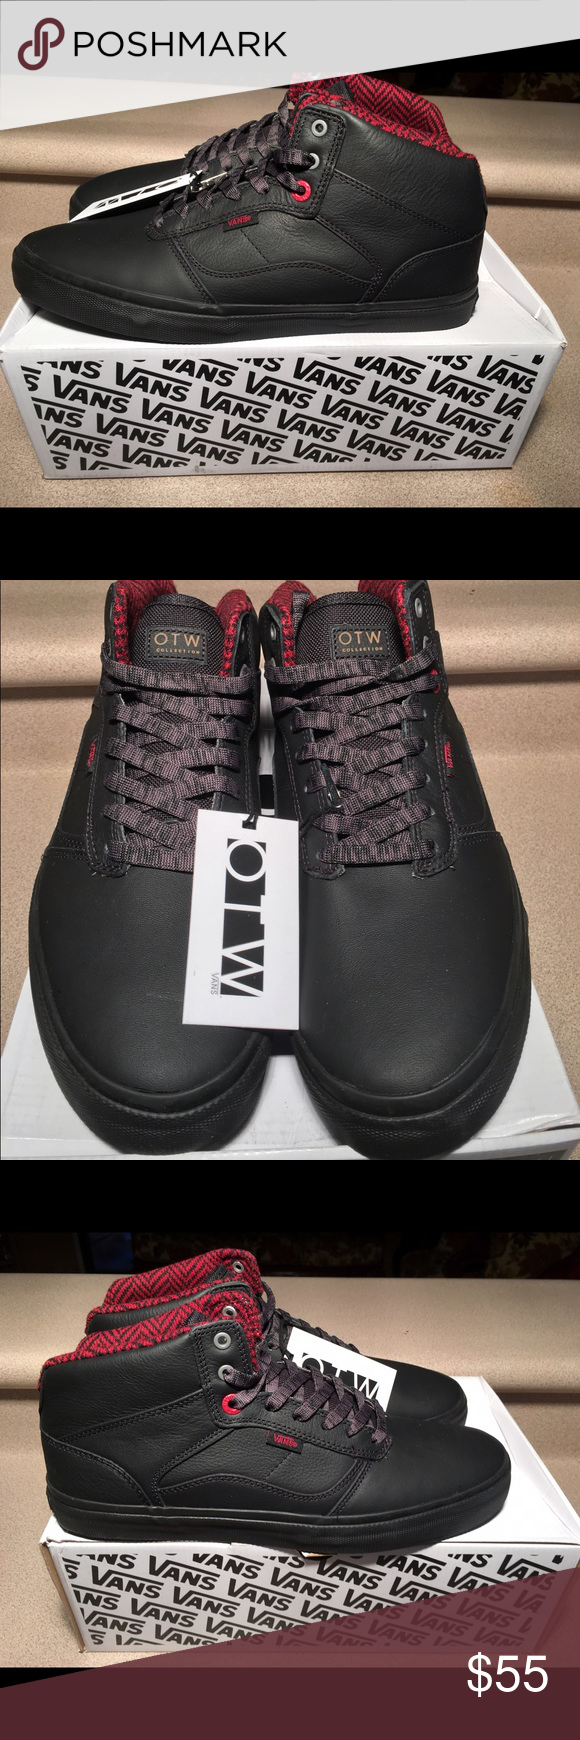 682770ff7cb9 ... recognized brands 274fe 0400c Vans Bedford Mens Ballistic Black Leather  Sz 11.5 Brand New Vans Bedford ...